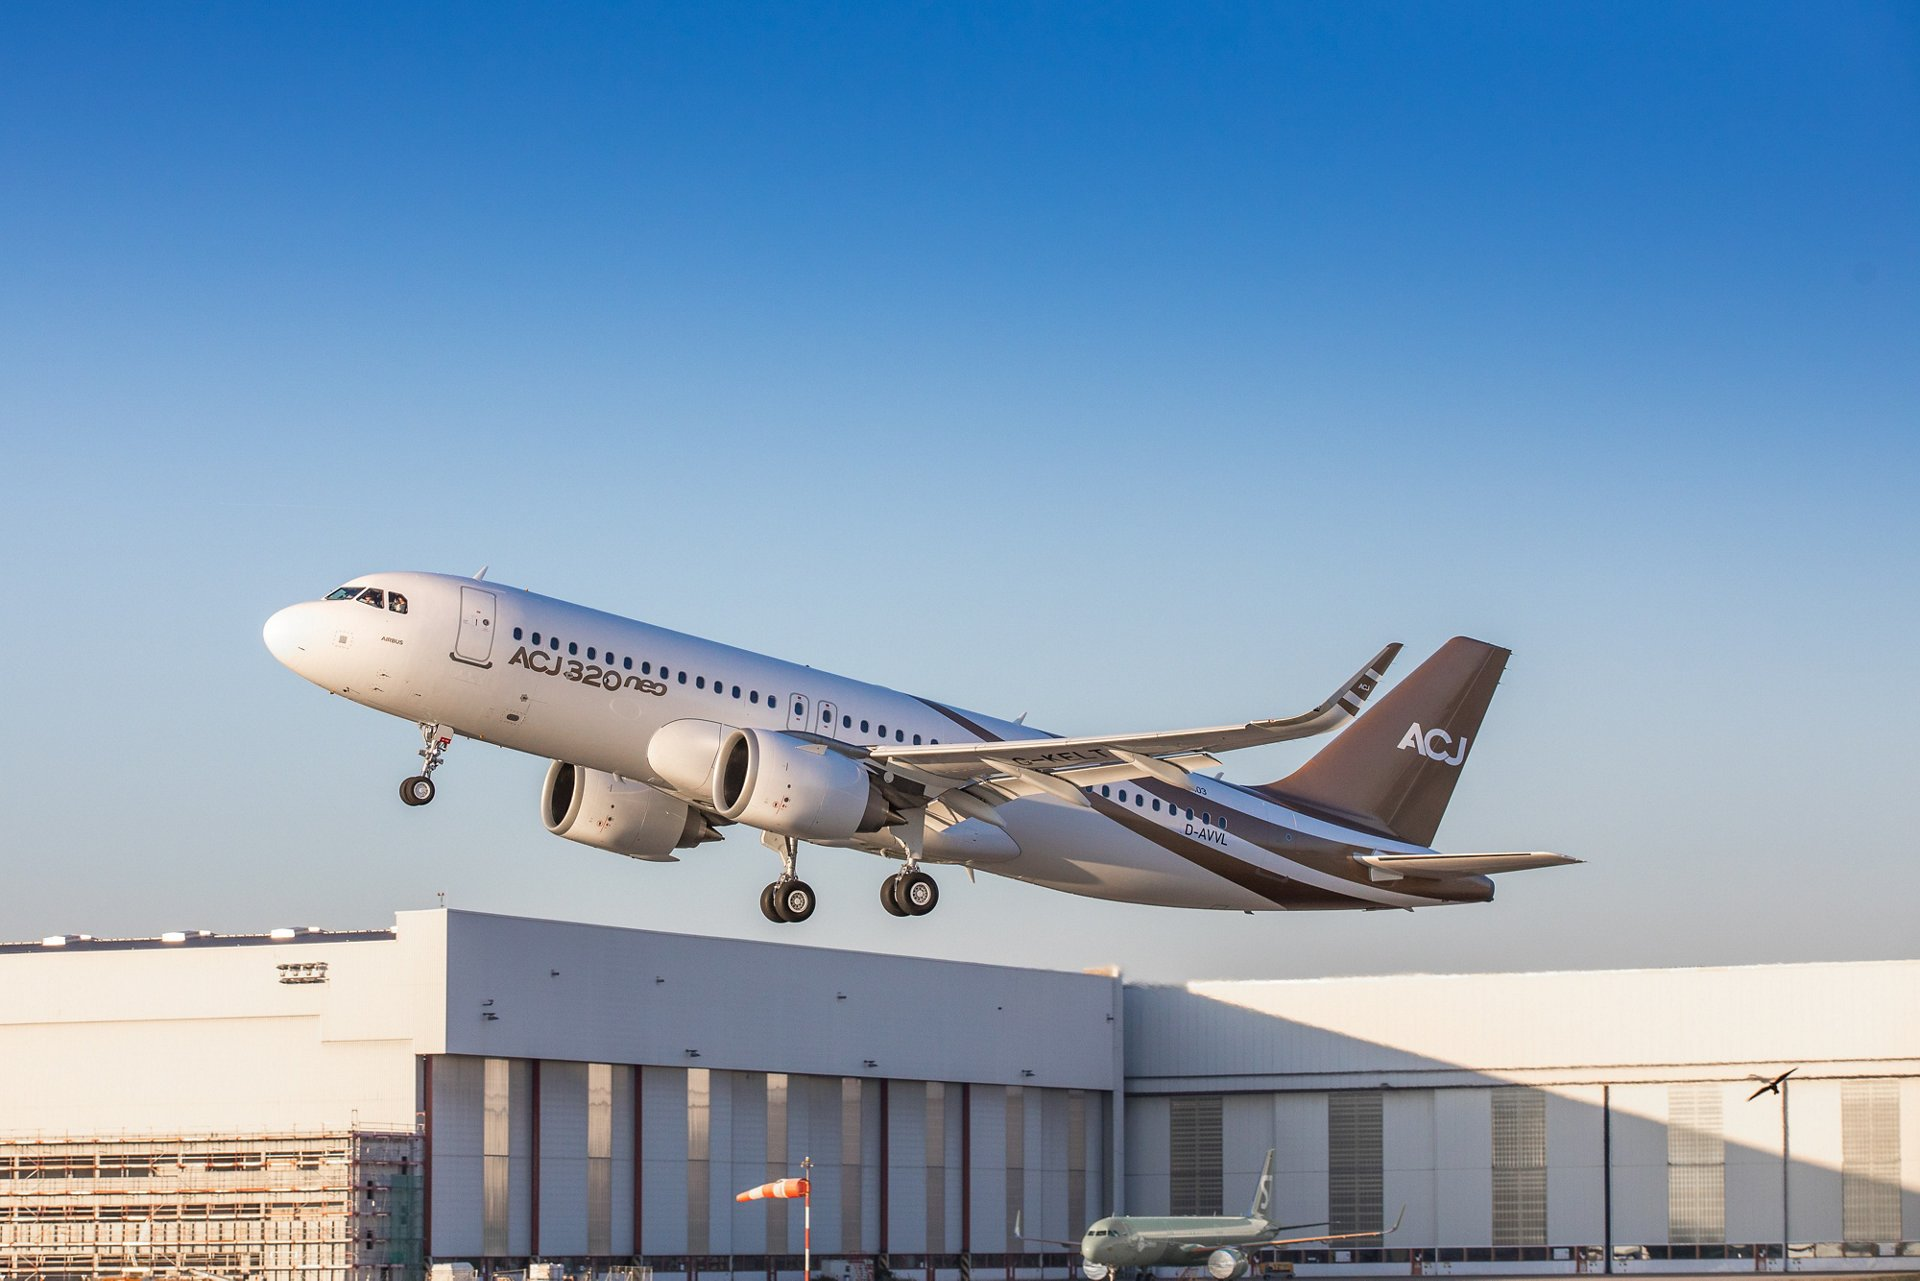 First ACJ320neo takes to the sky for the first time